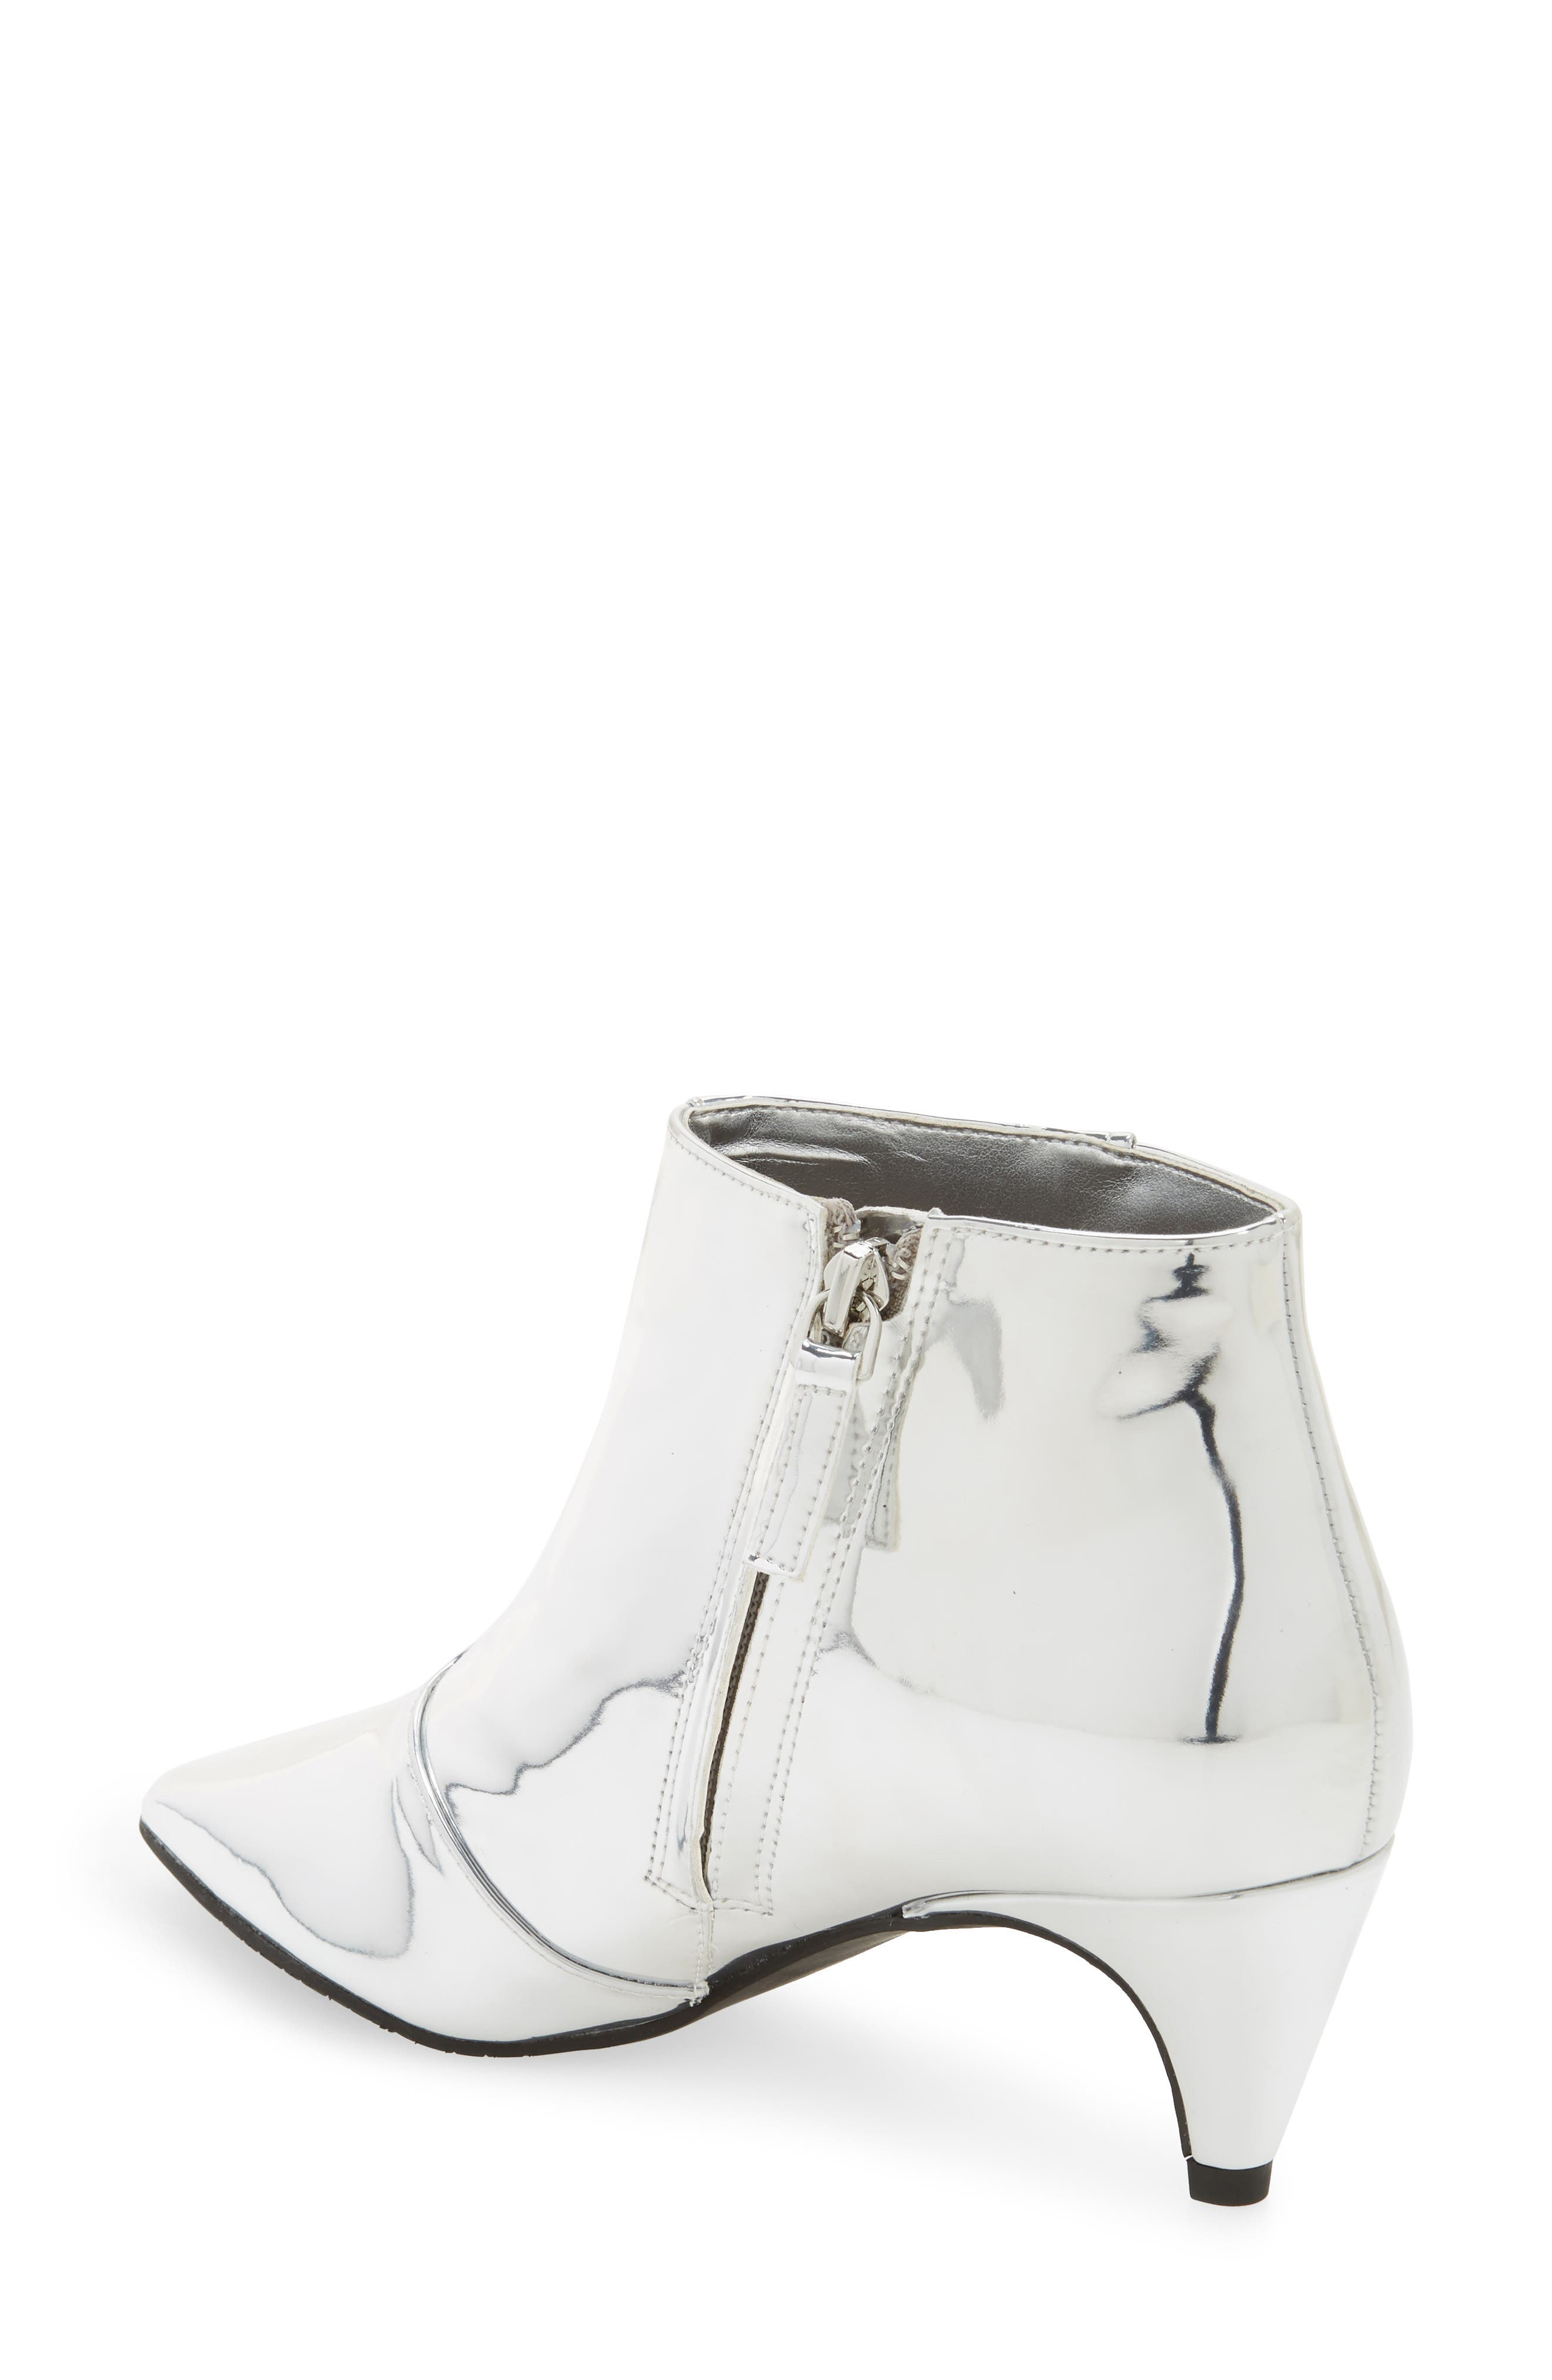 Major Pointy Toe Bootie,                             Alternate thumbnail 2, color,                             Silver Mirror Faux Leather